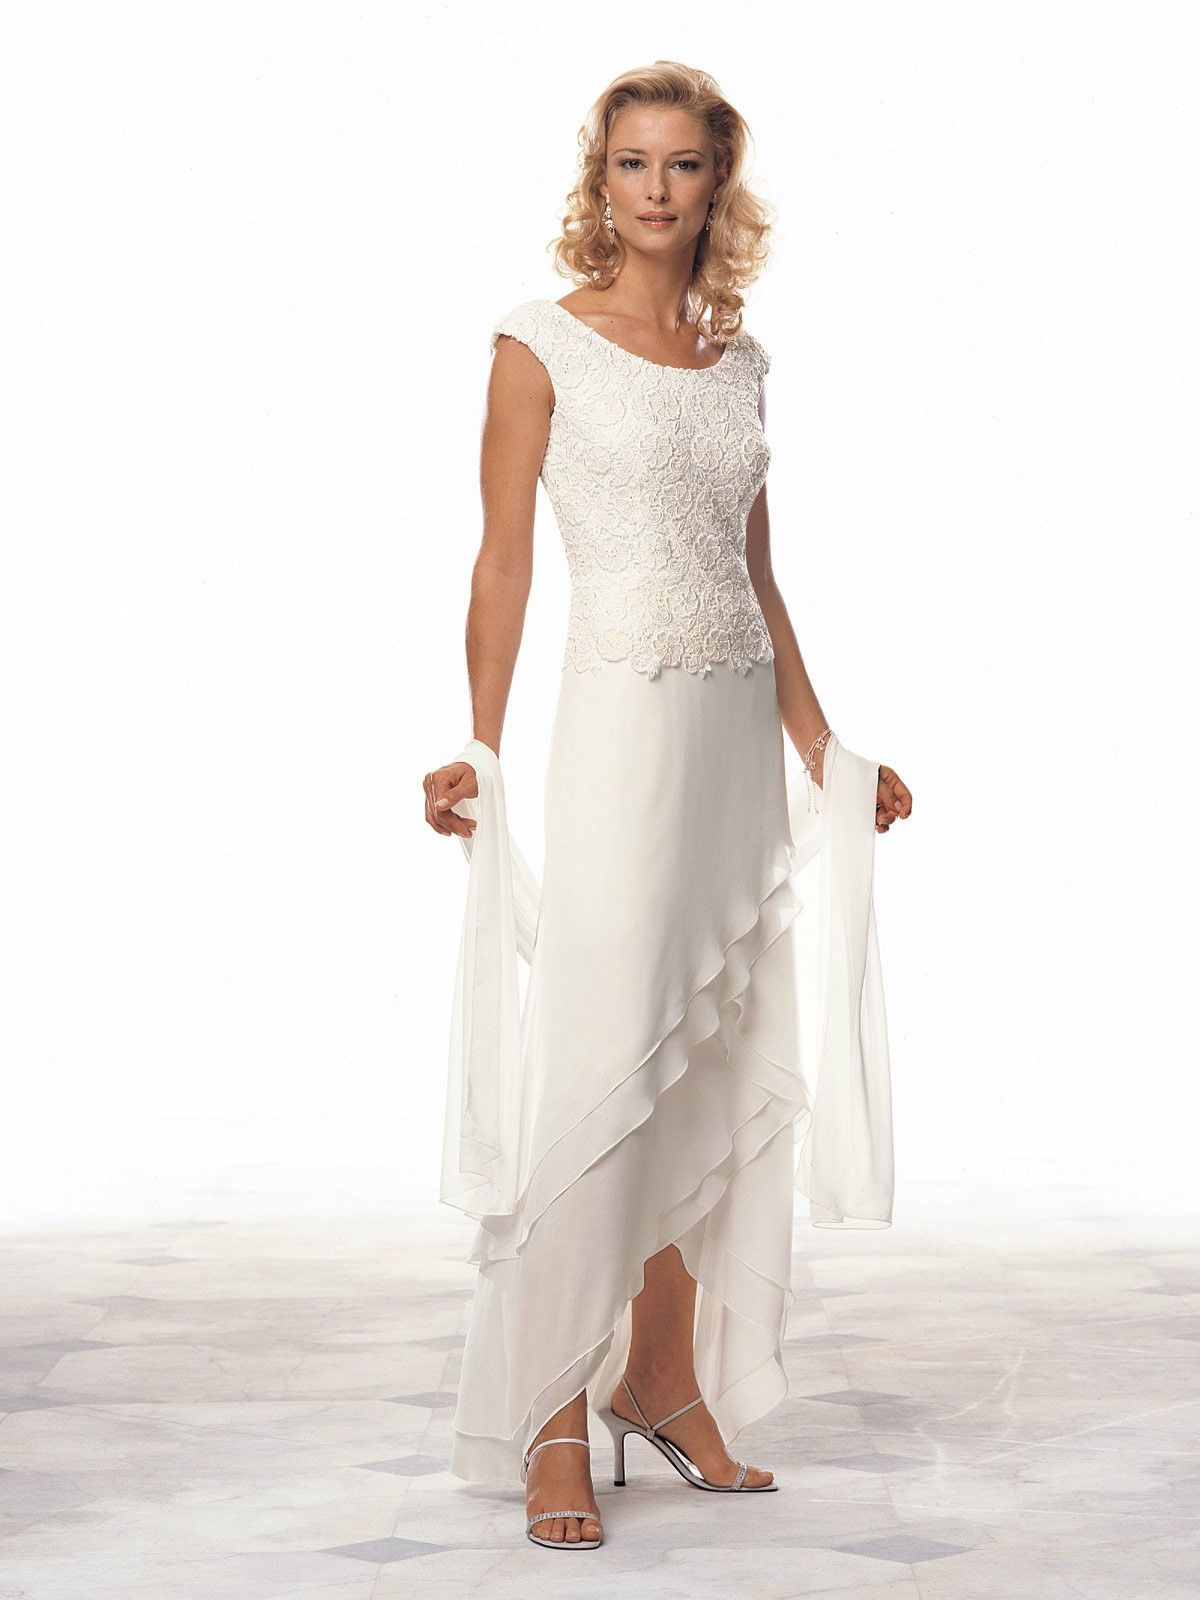 mother of the bride beach wedding Google Search (With